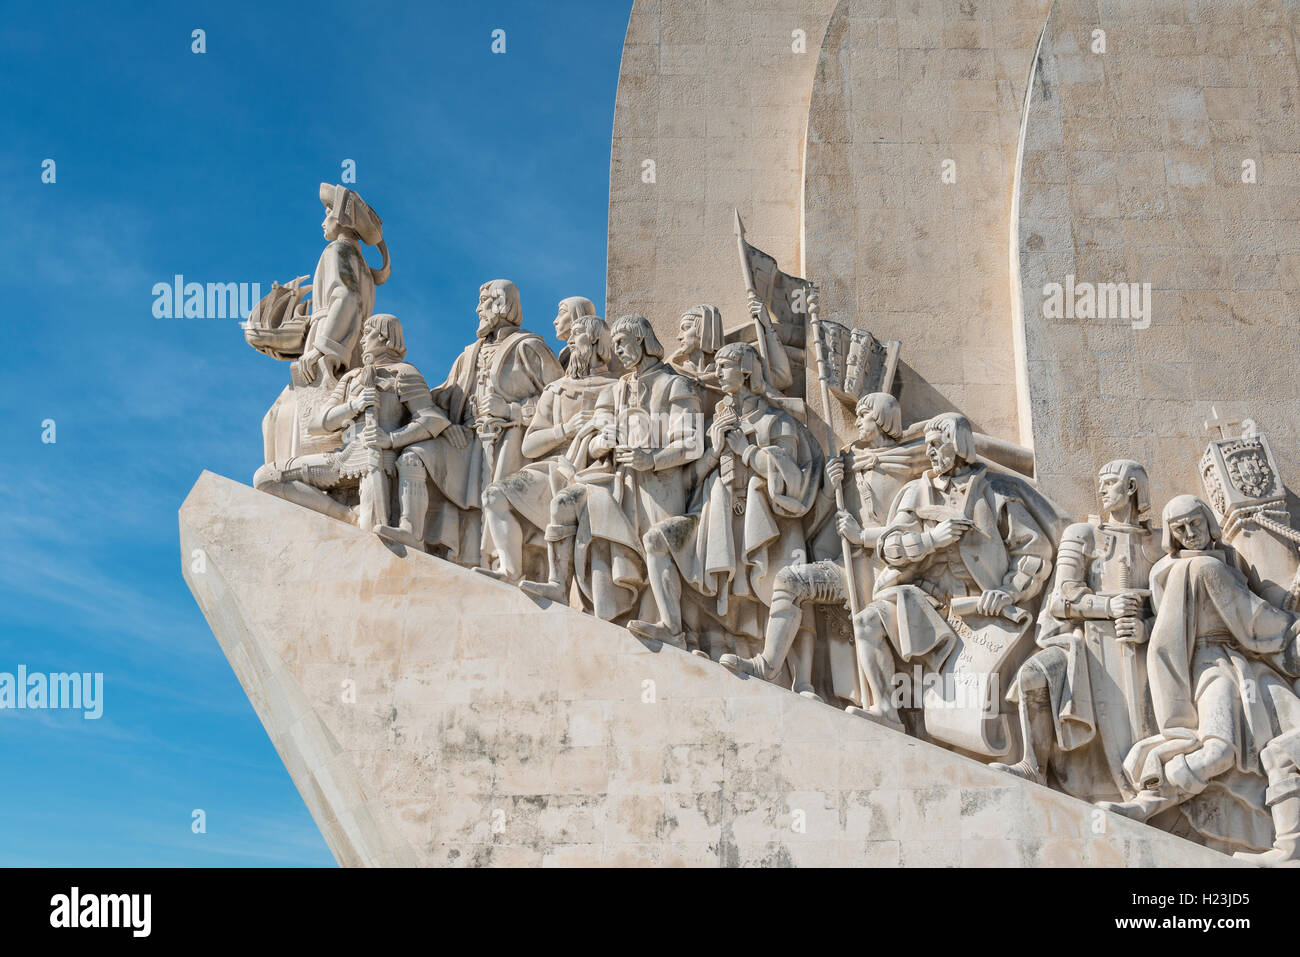 Padrão dos Descobrimentos, Monument to the Discoveries, close-up, Belém, Lisbon, Portugal - Stock Image